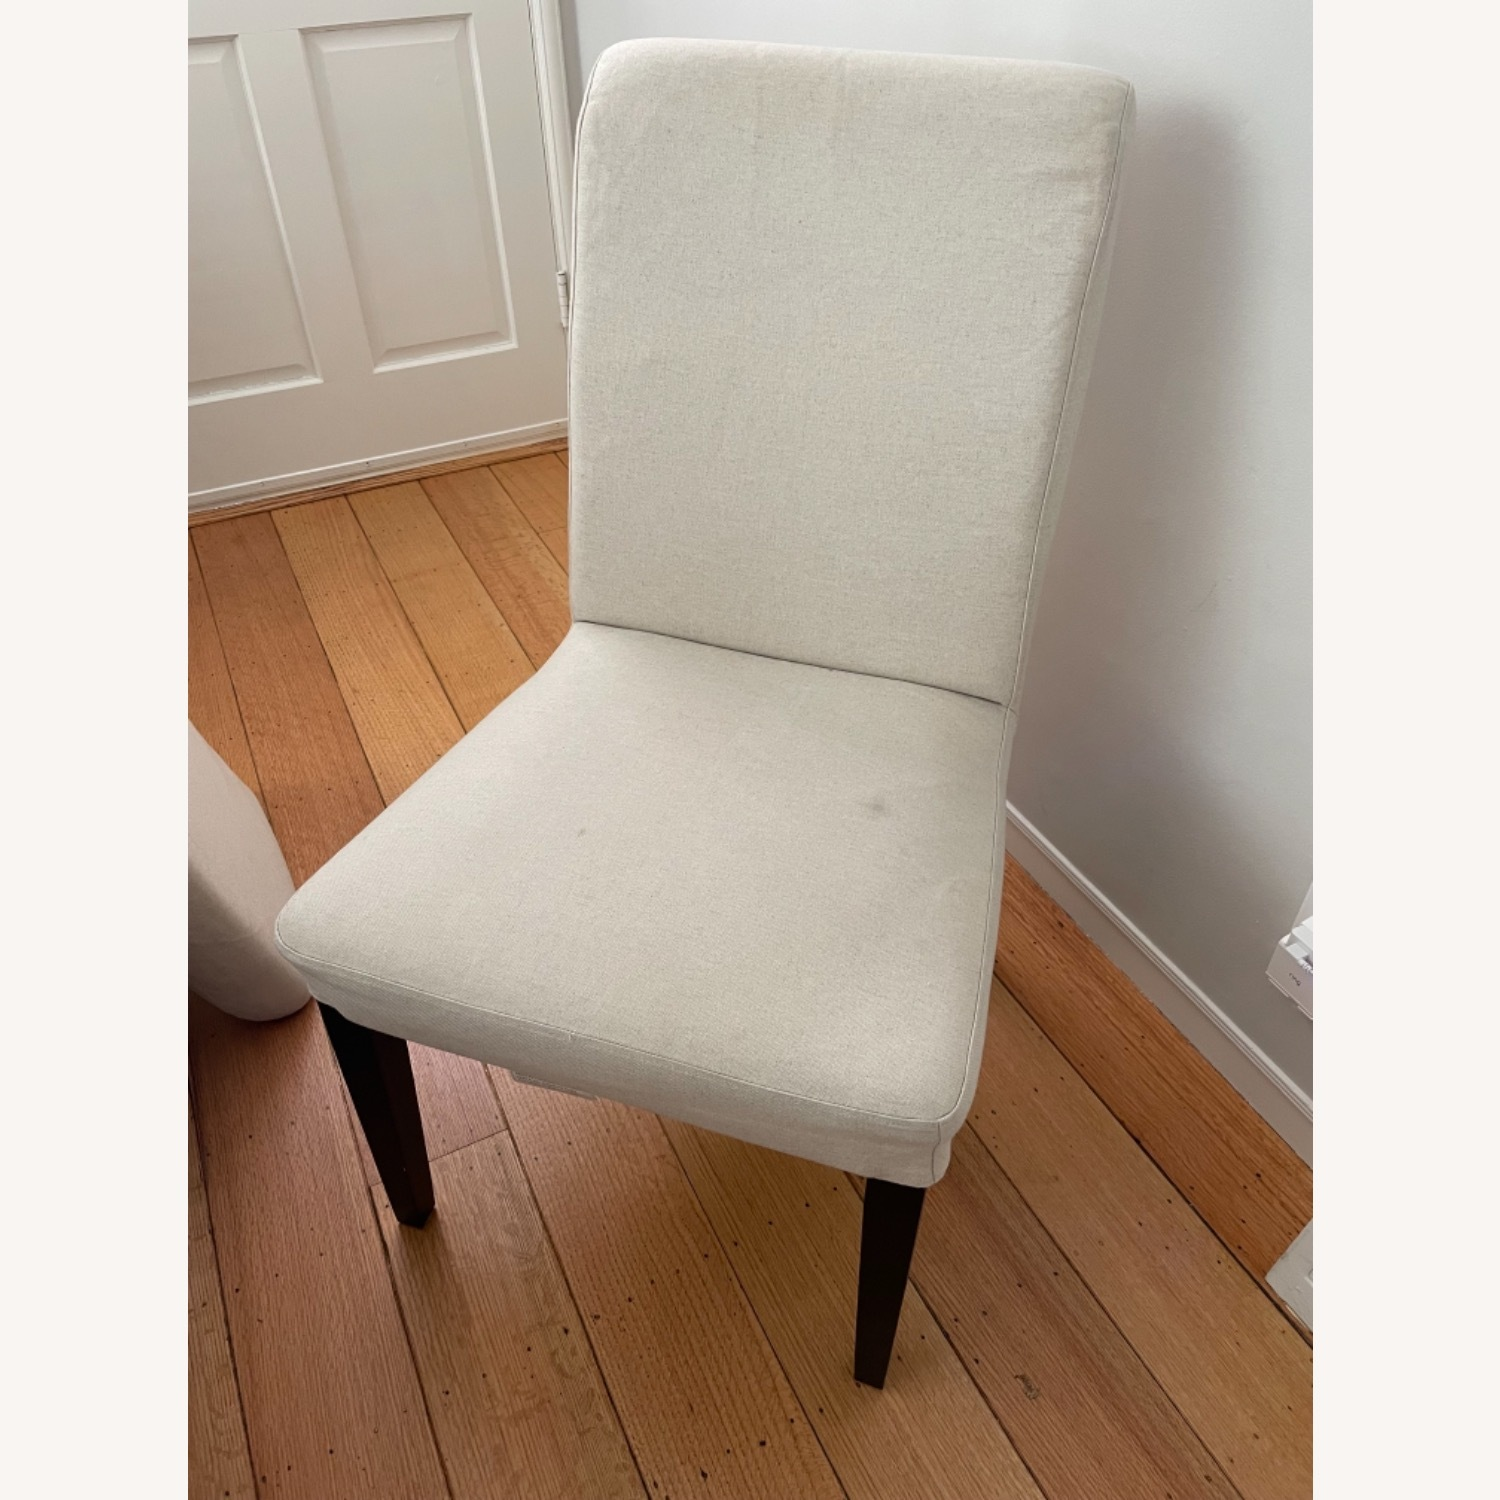 IKEA Set of 4 Cream Colored Dining Chairs - image-1